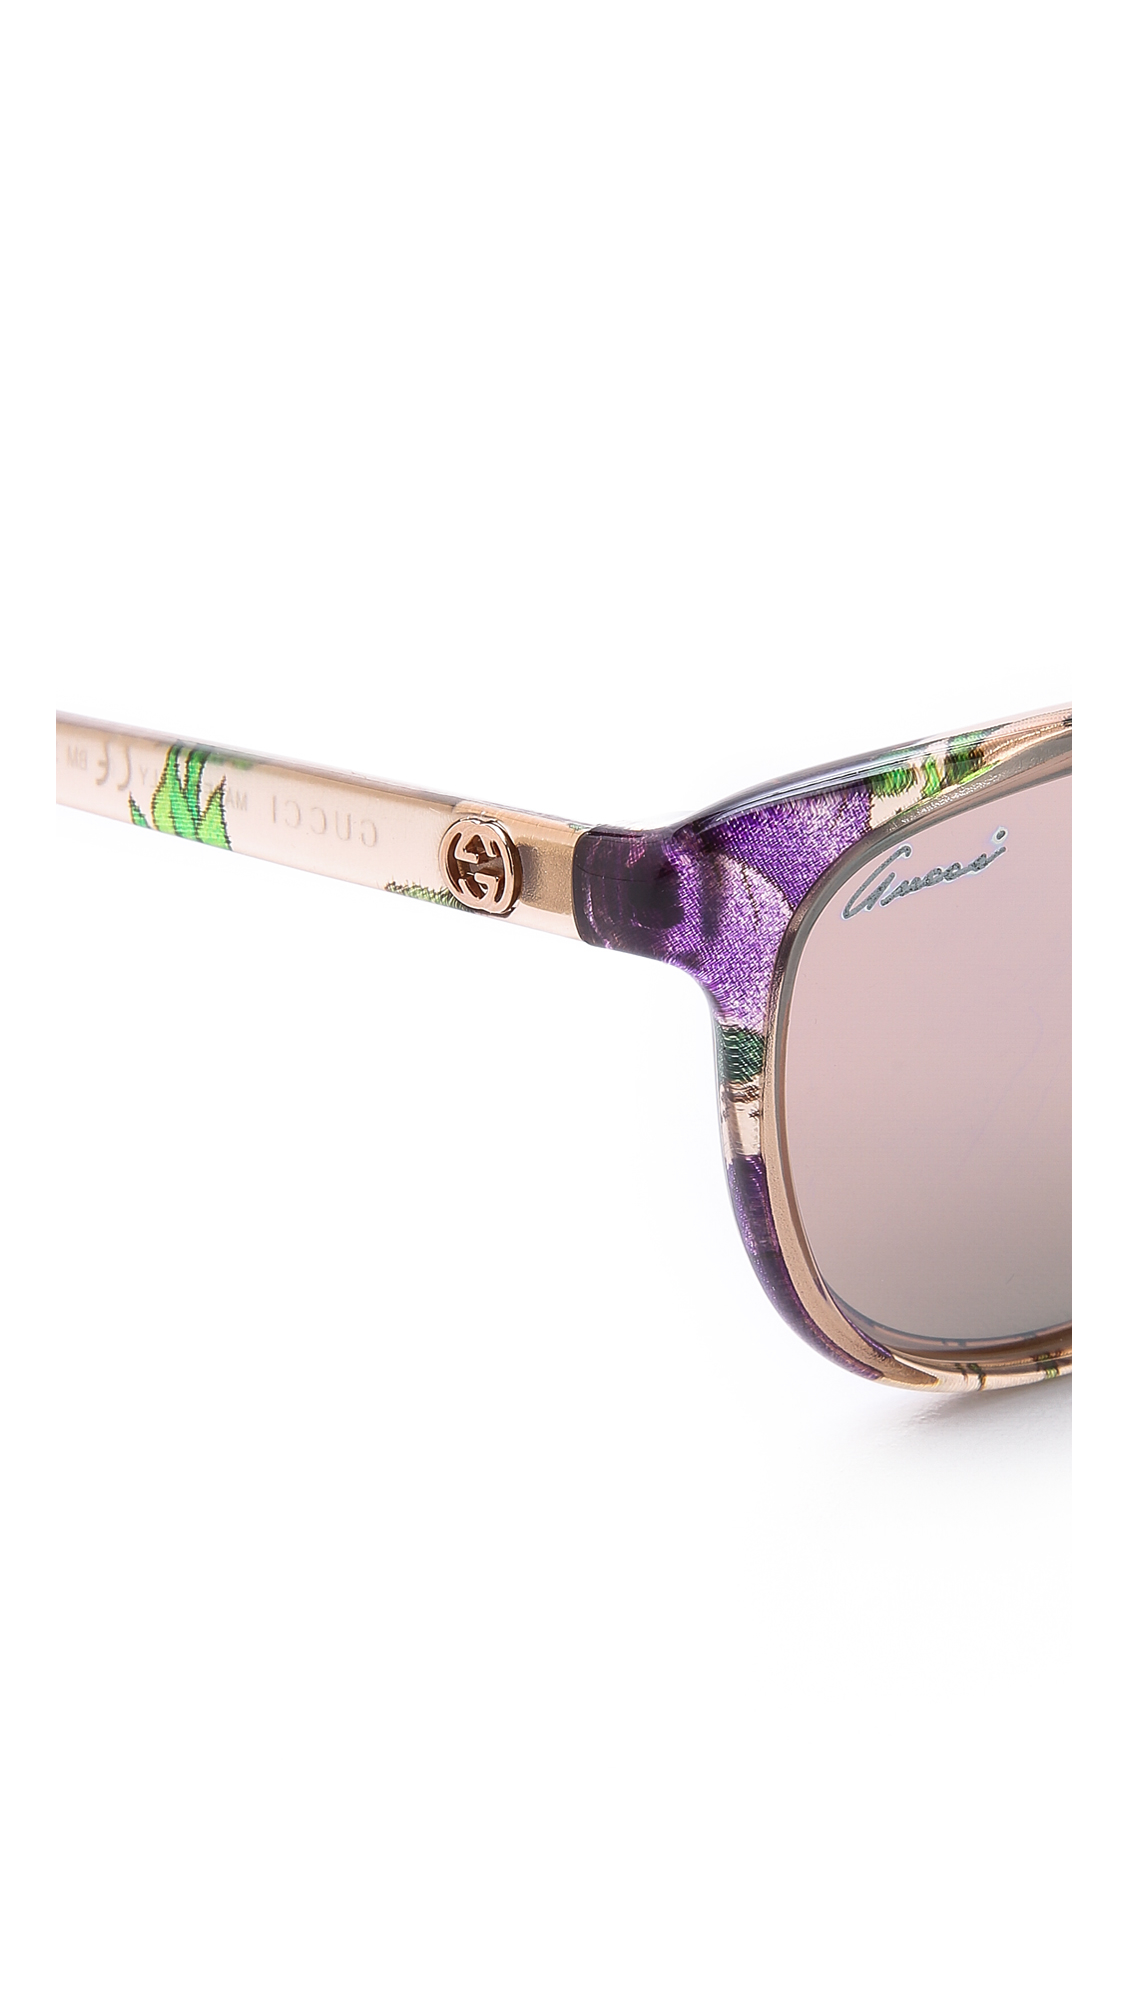 c2ebba80176 Lyst - Gucci Floral Sunglasses in Natural